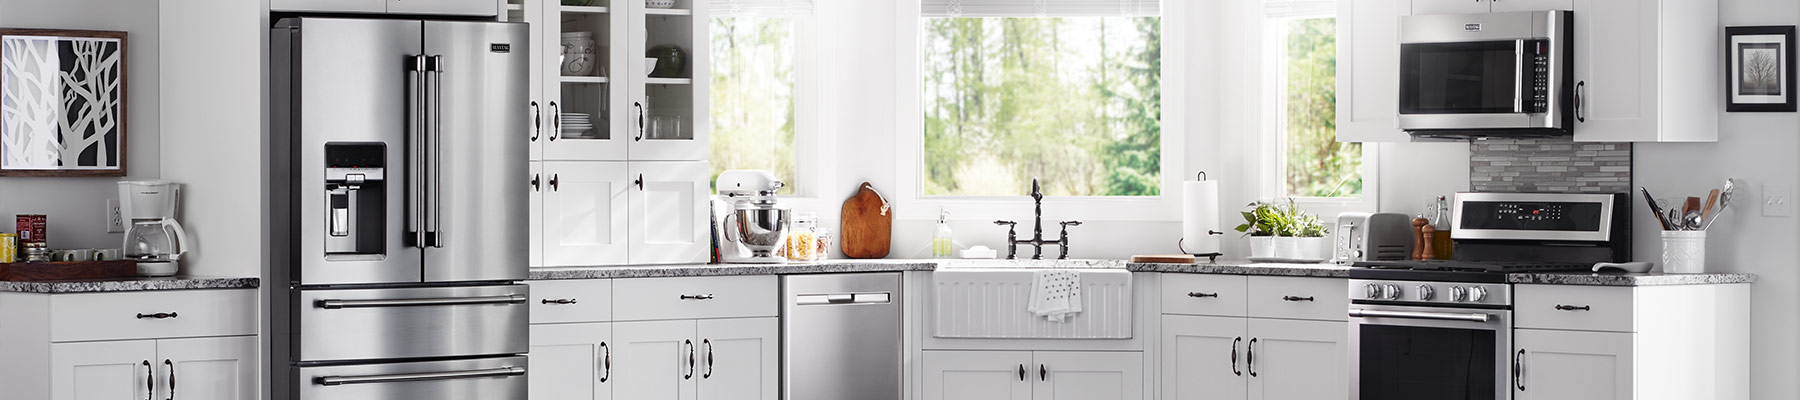 Appliance Service & Appliance Repair in Roswell, NM | Bush Woodworks ...